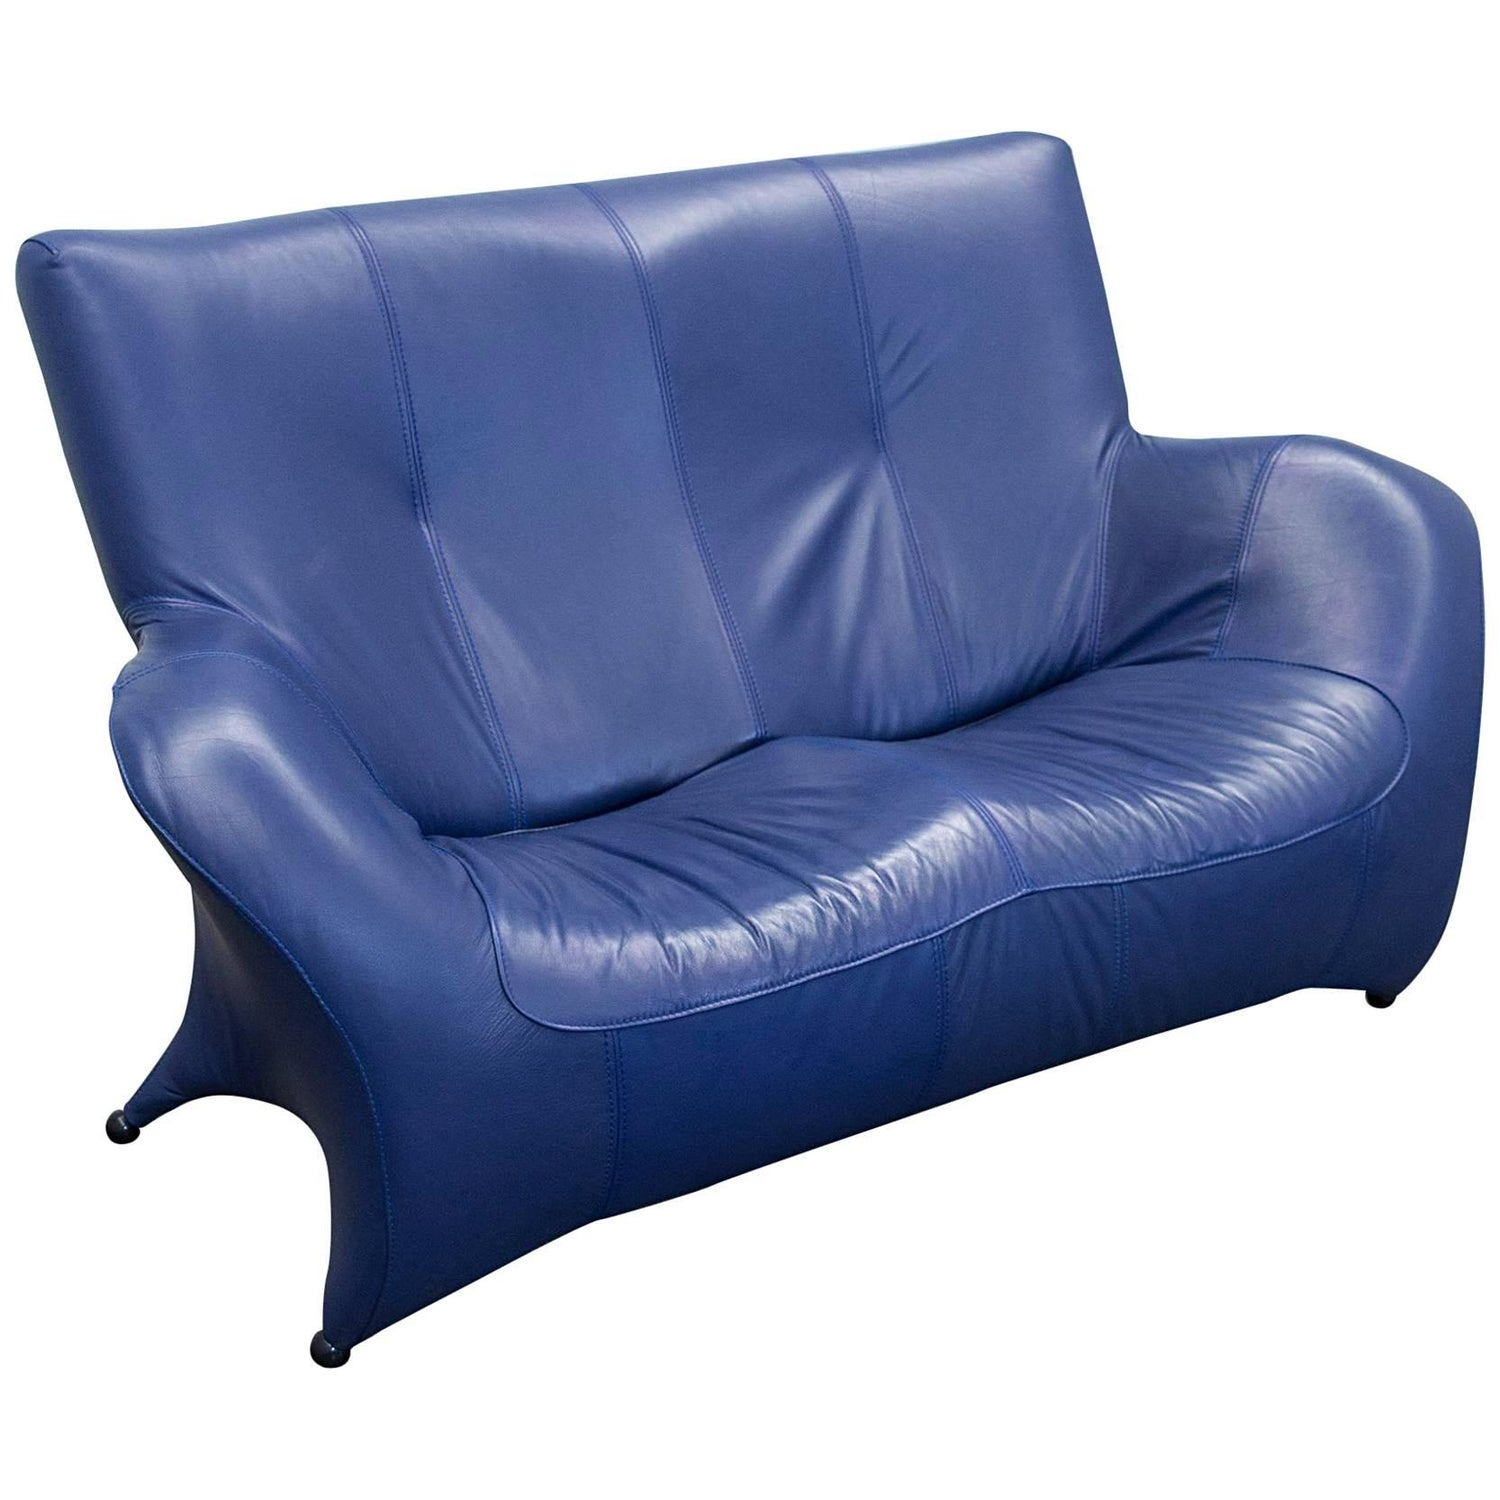 Designer Sofa Leather Blue Two Seat Couch Modern For Sale at 1stdibs